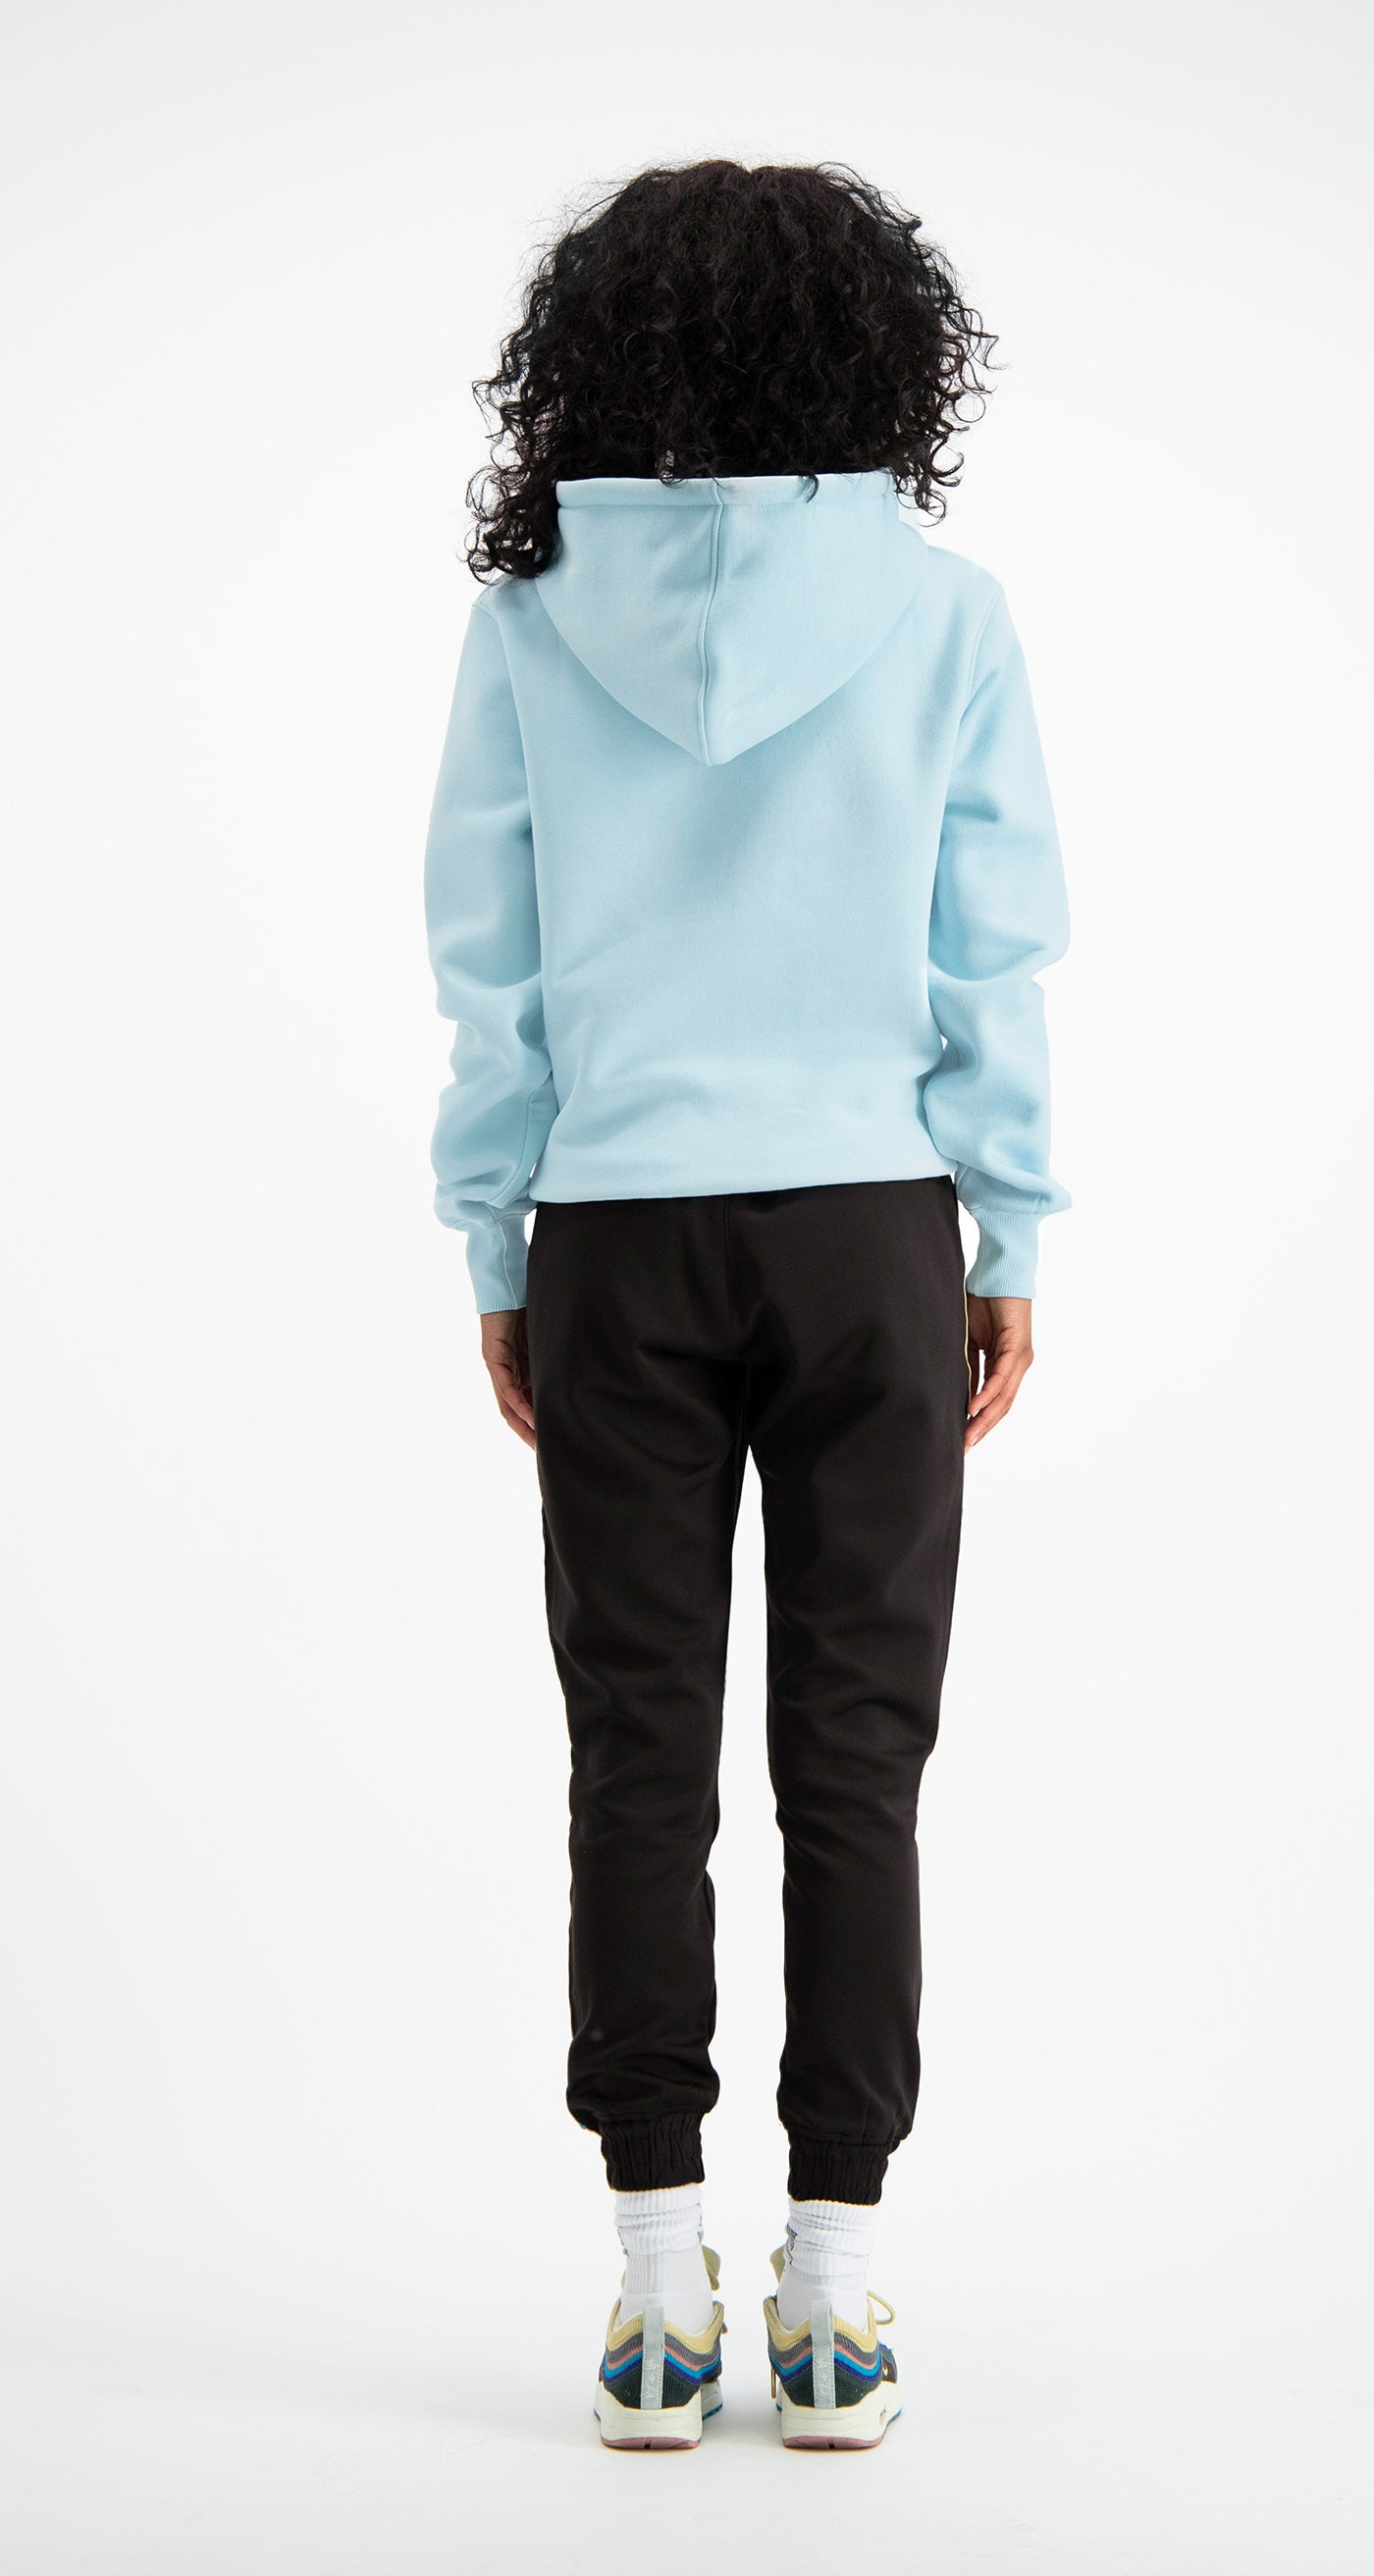 Pastel Blue Copatch Hoody